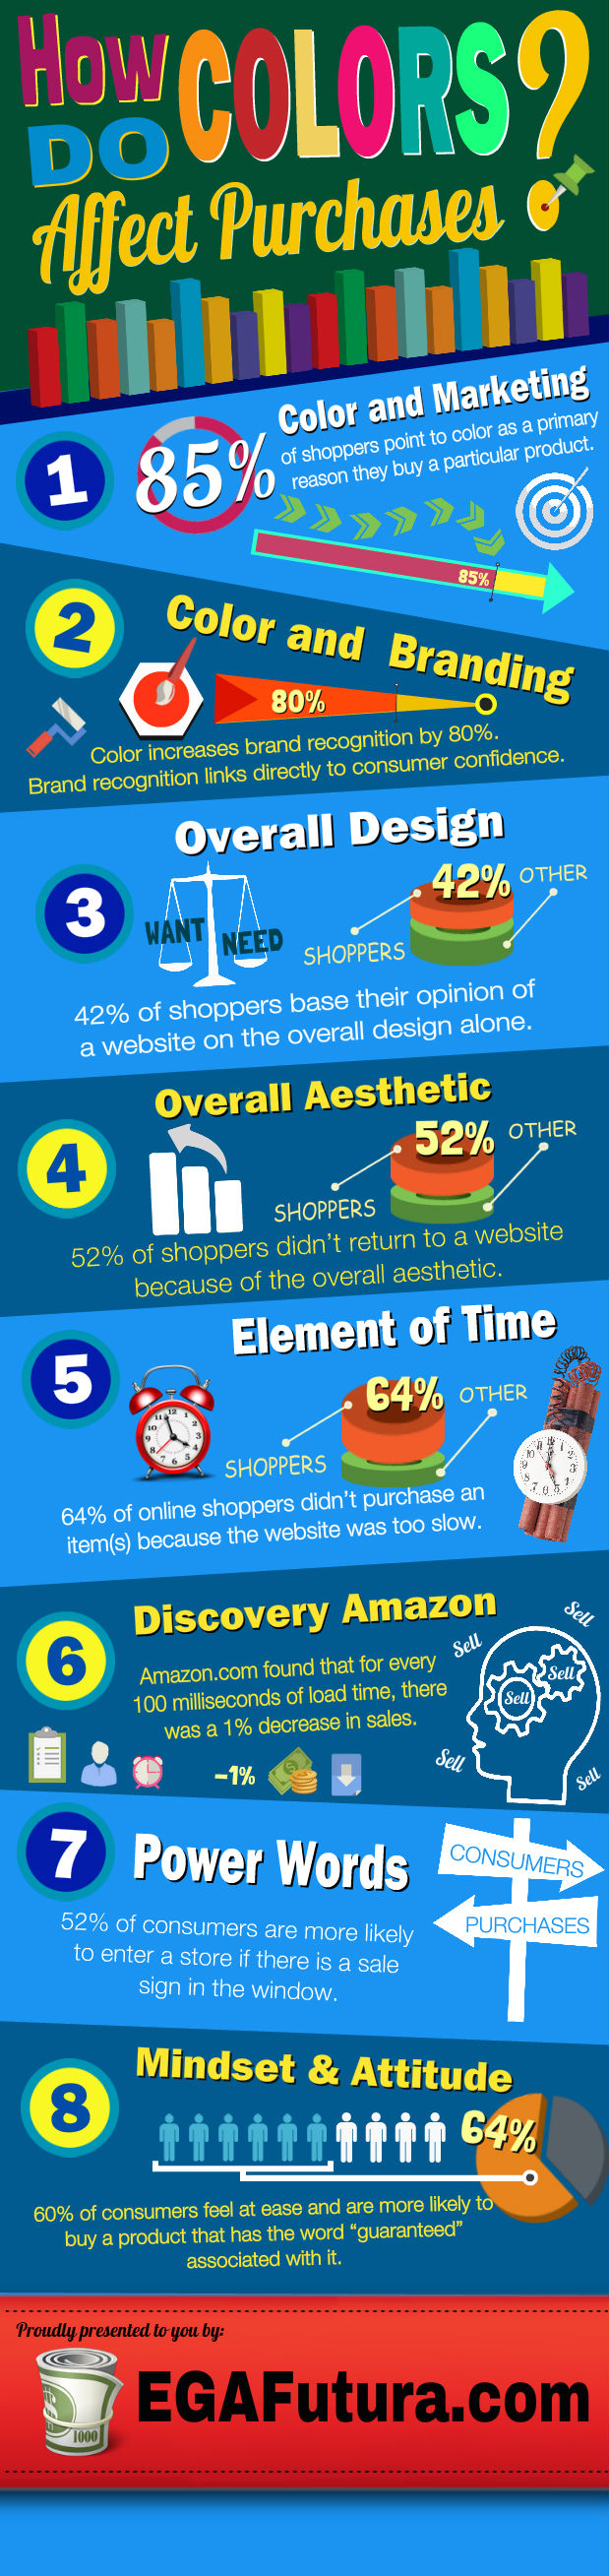 Infographic: How do Colors Affect Purchases? #infographic